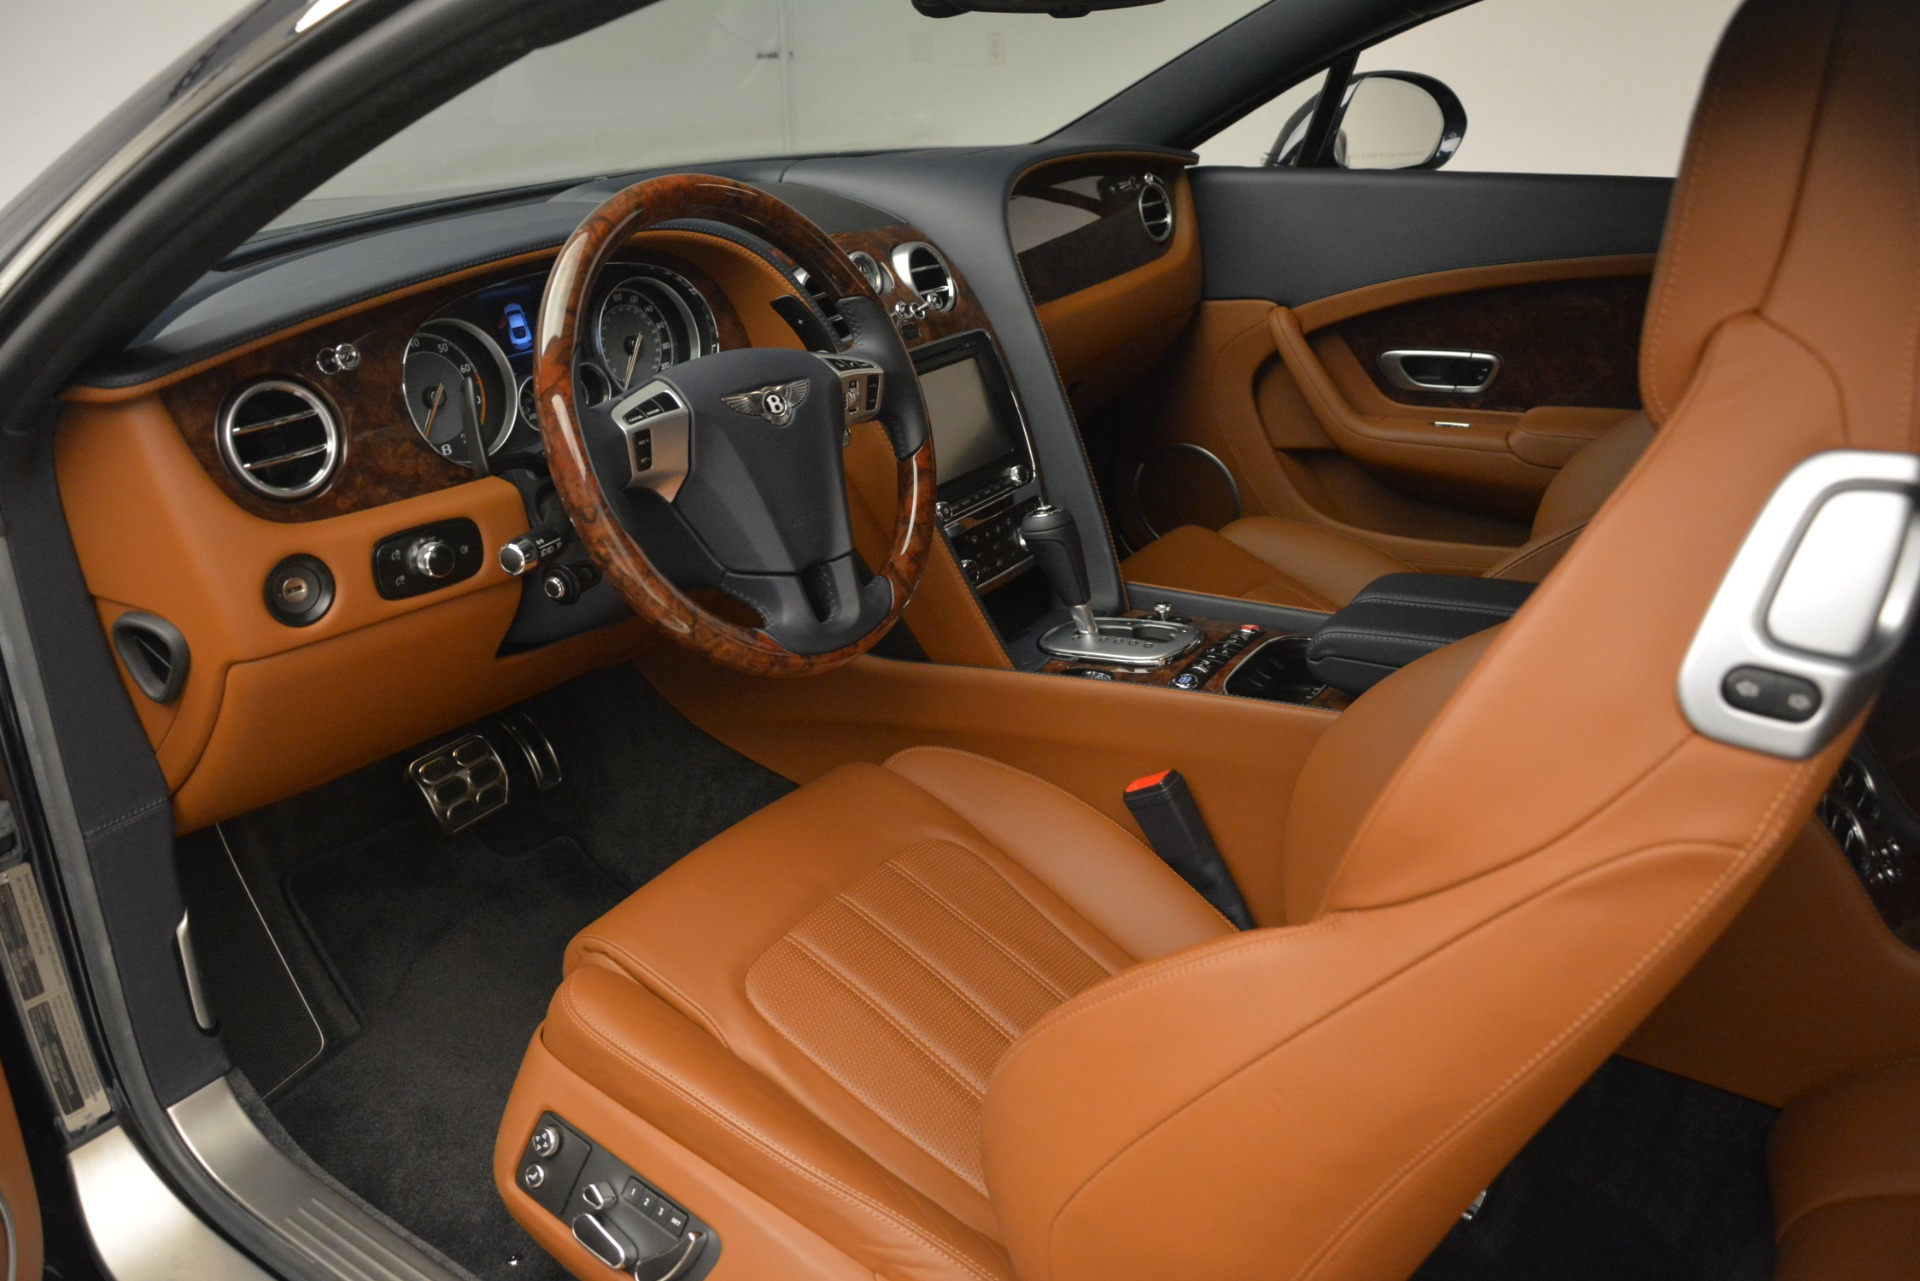 Used 2013 Bentley Continental GT V8 For Sale In Westport, CT 3257_p18